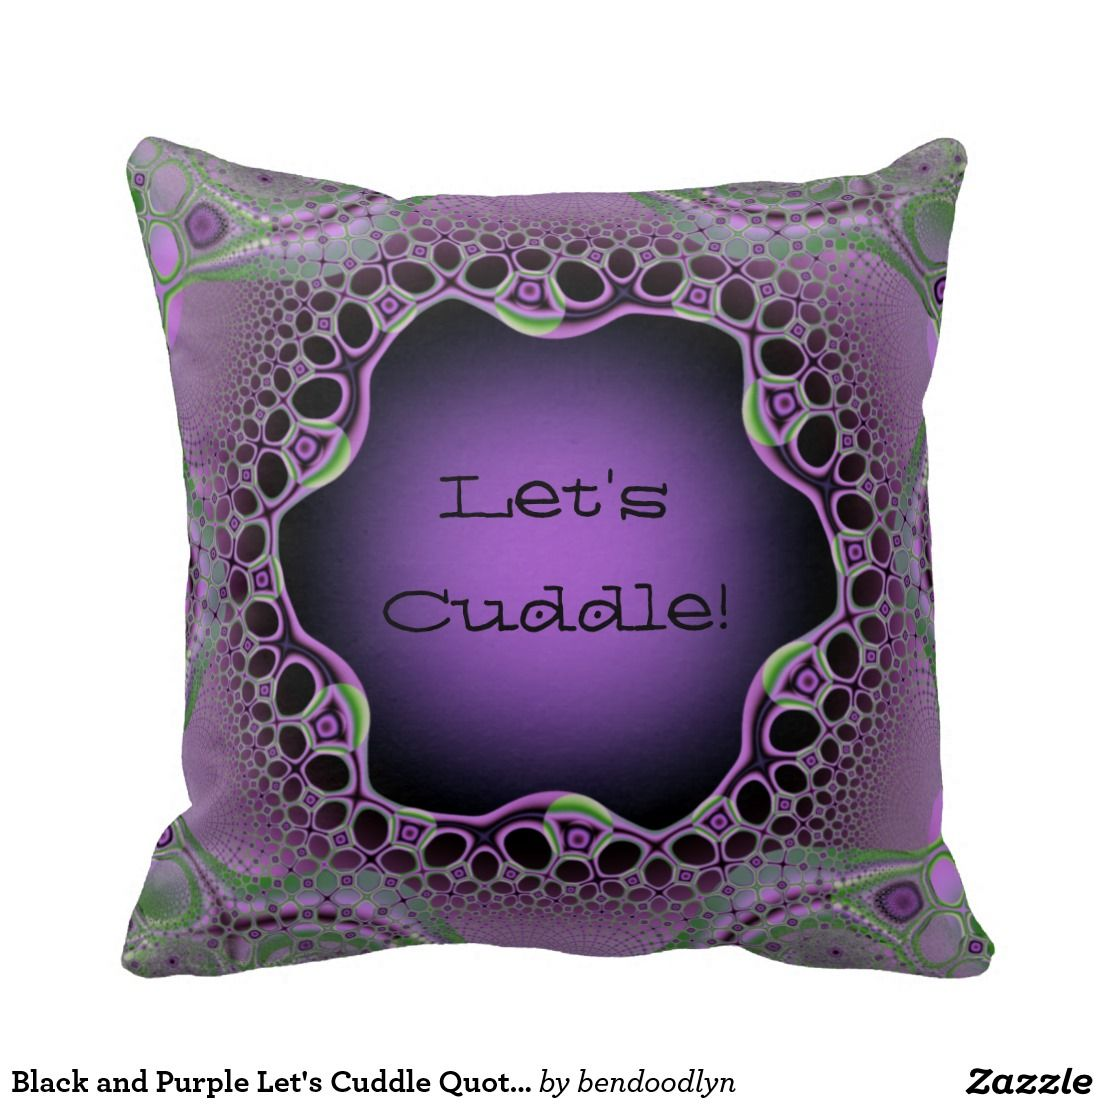 Black and Purple Let's Cuddle Quote Throw Pillows